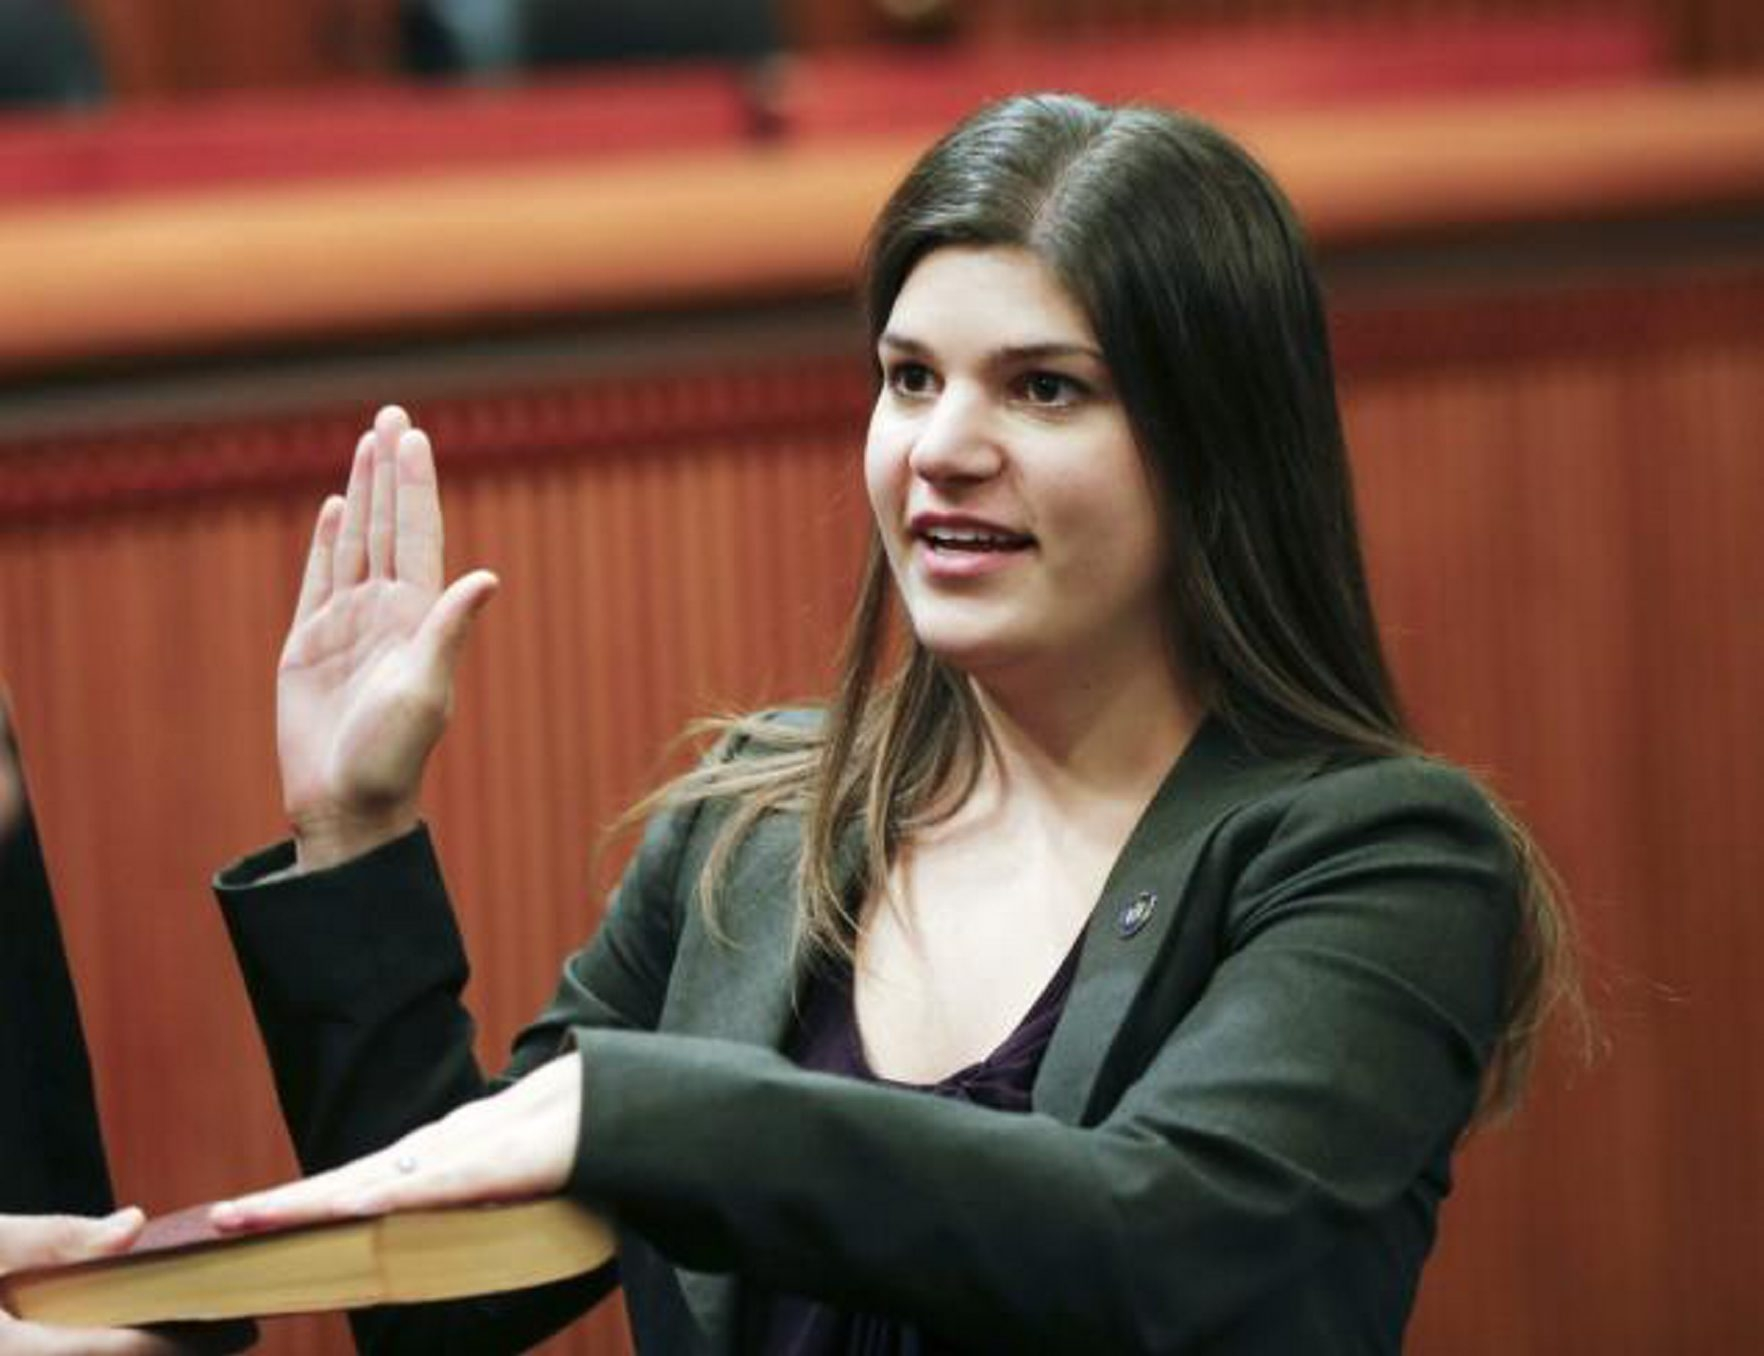 Cheektowaga Assemblywoman Angela Wozniak has let her constituents down.